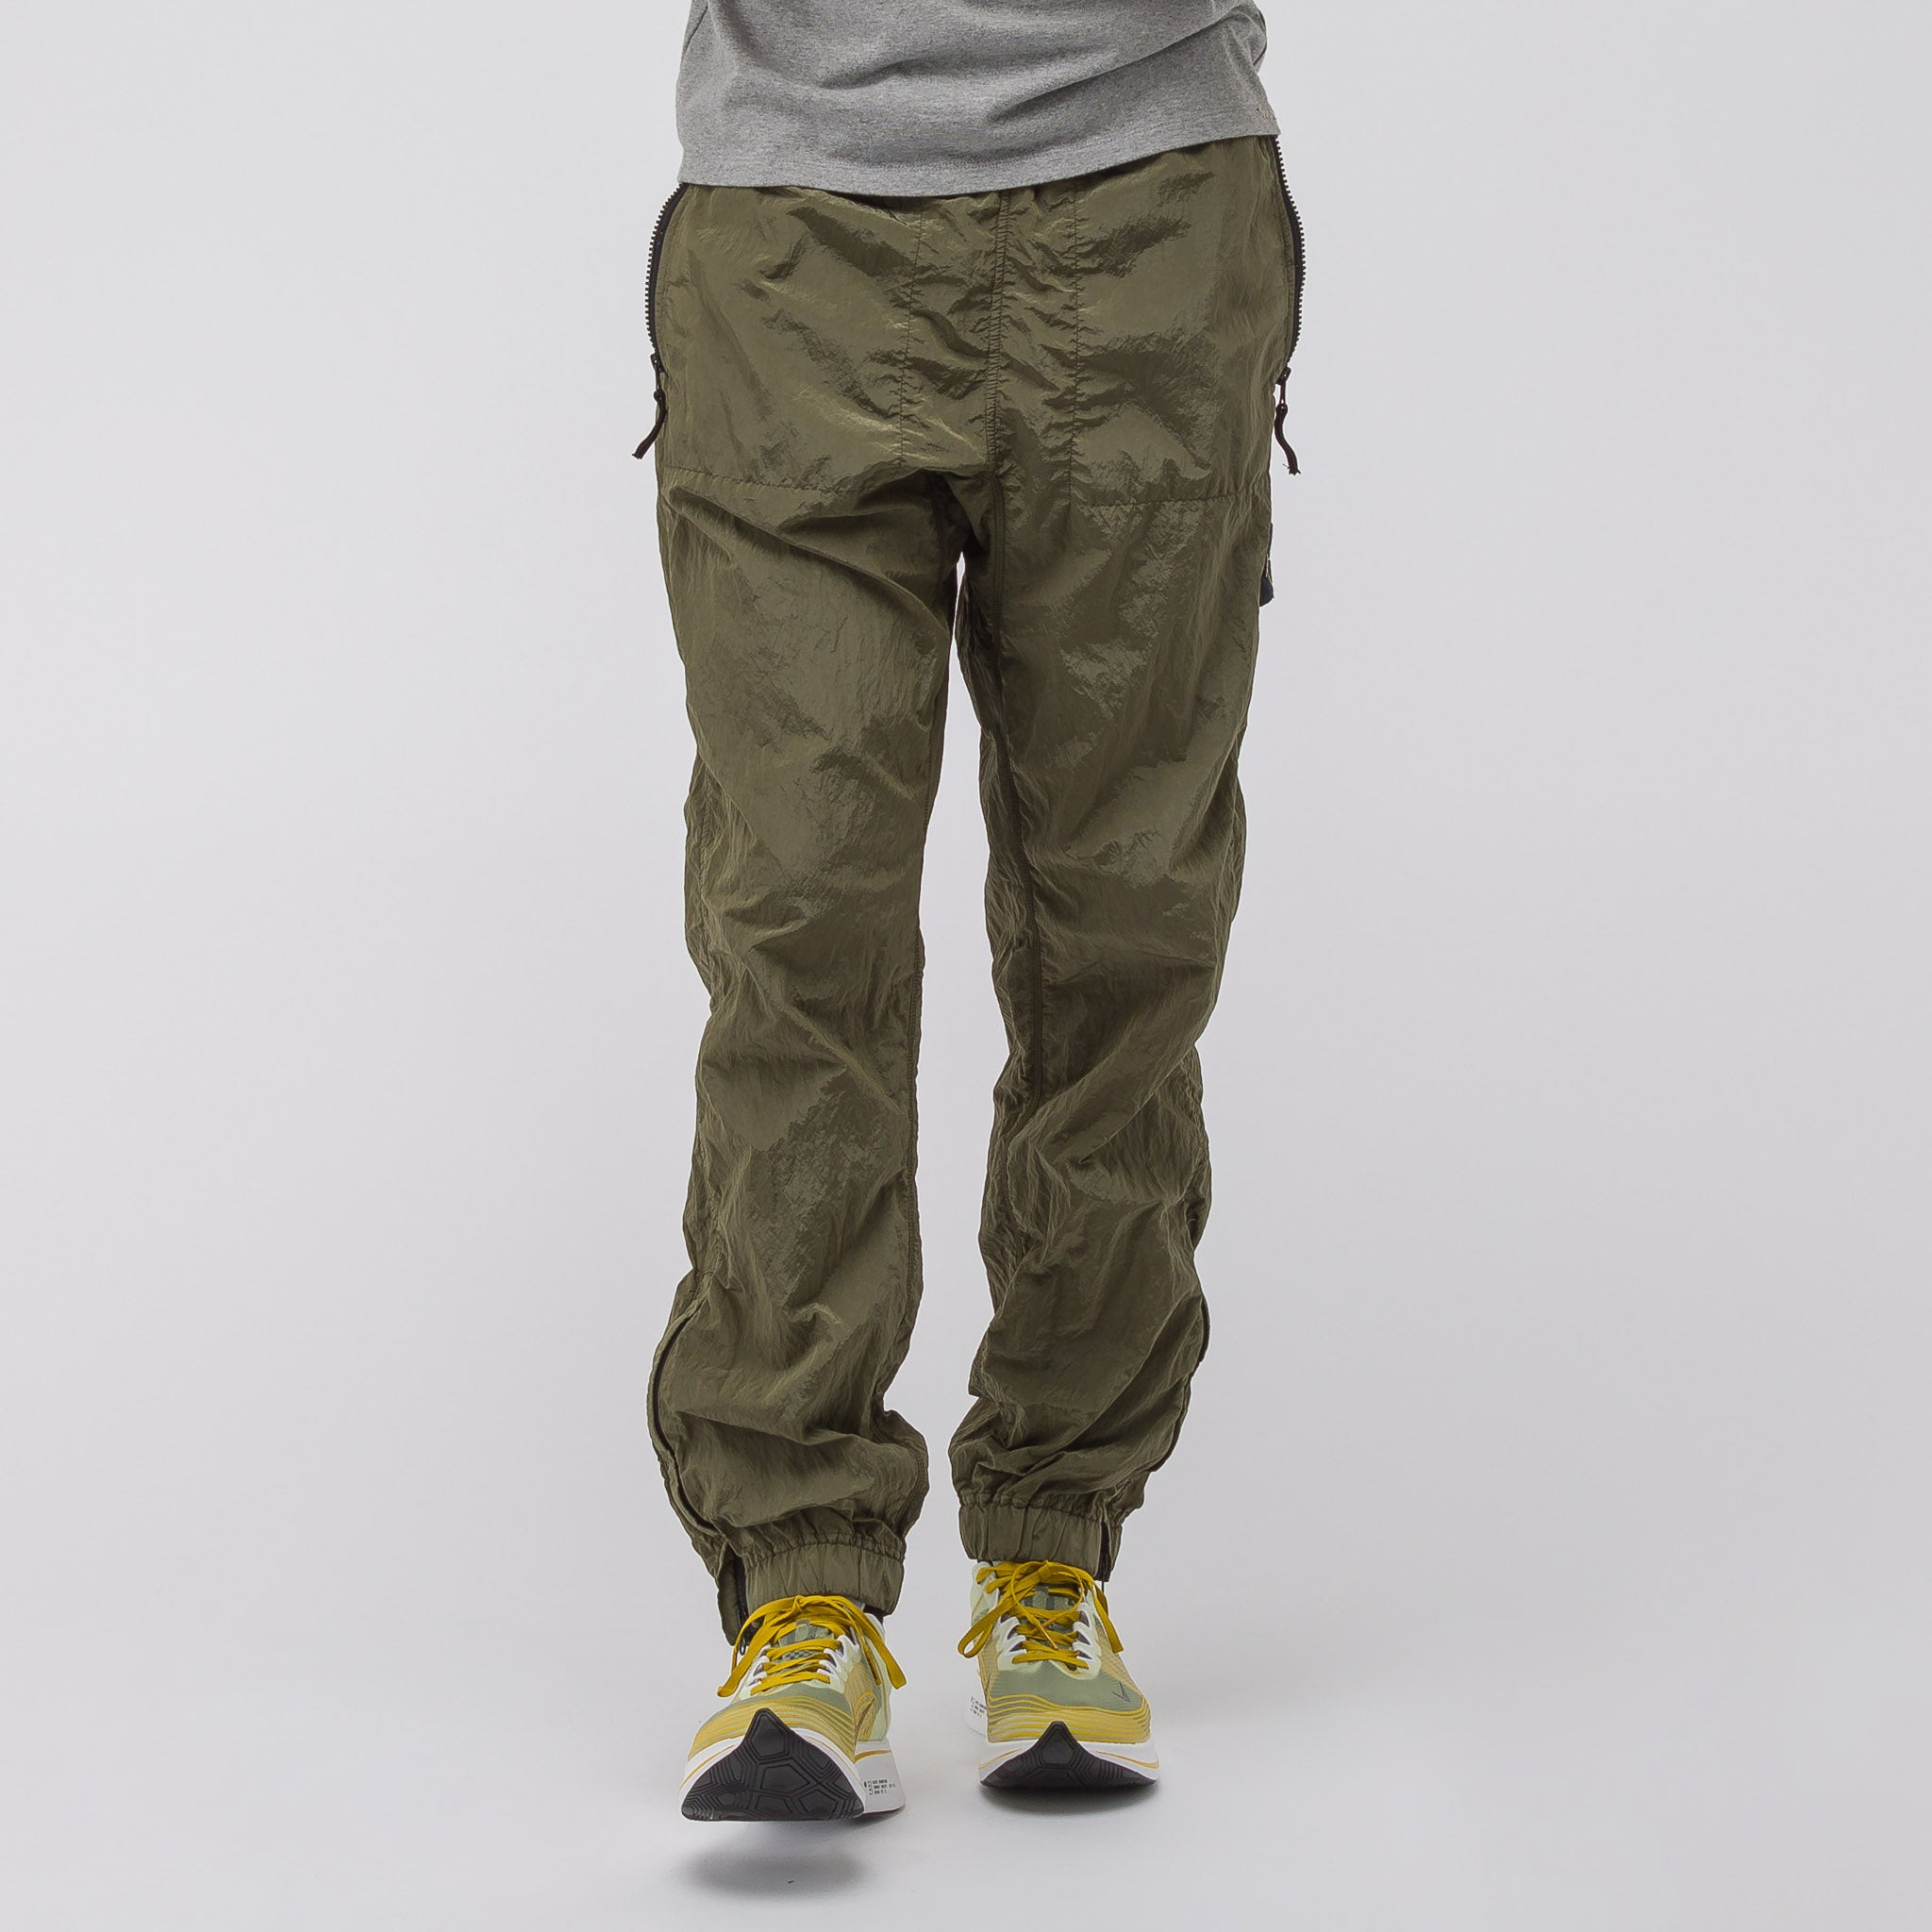 64212 Track Pant in Olive